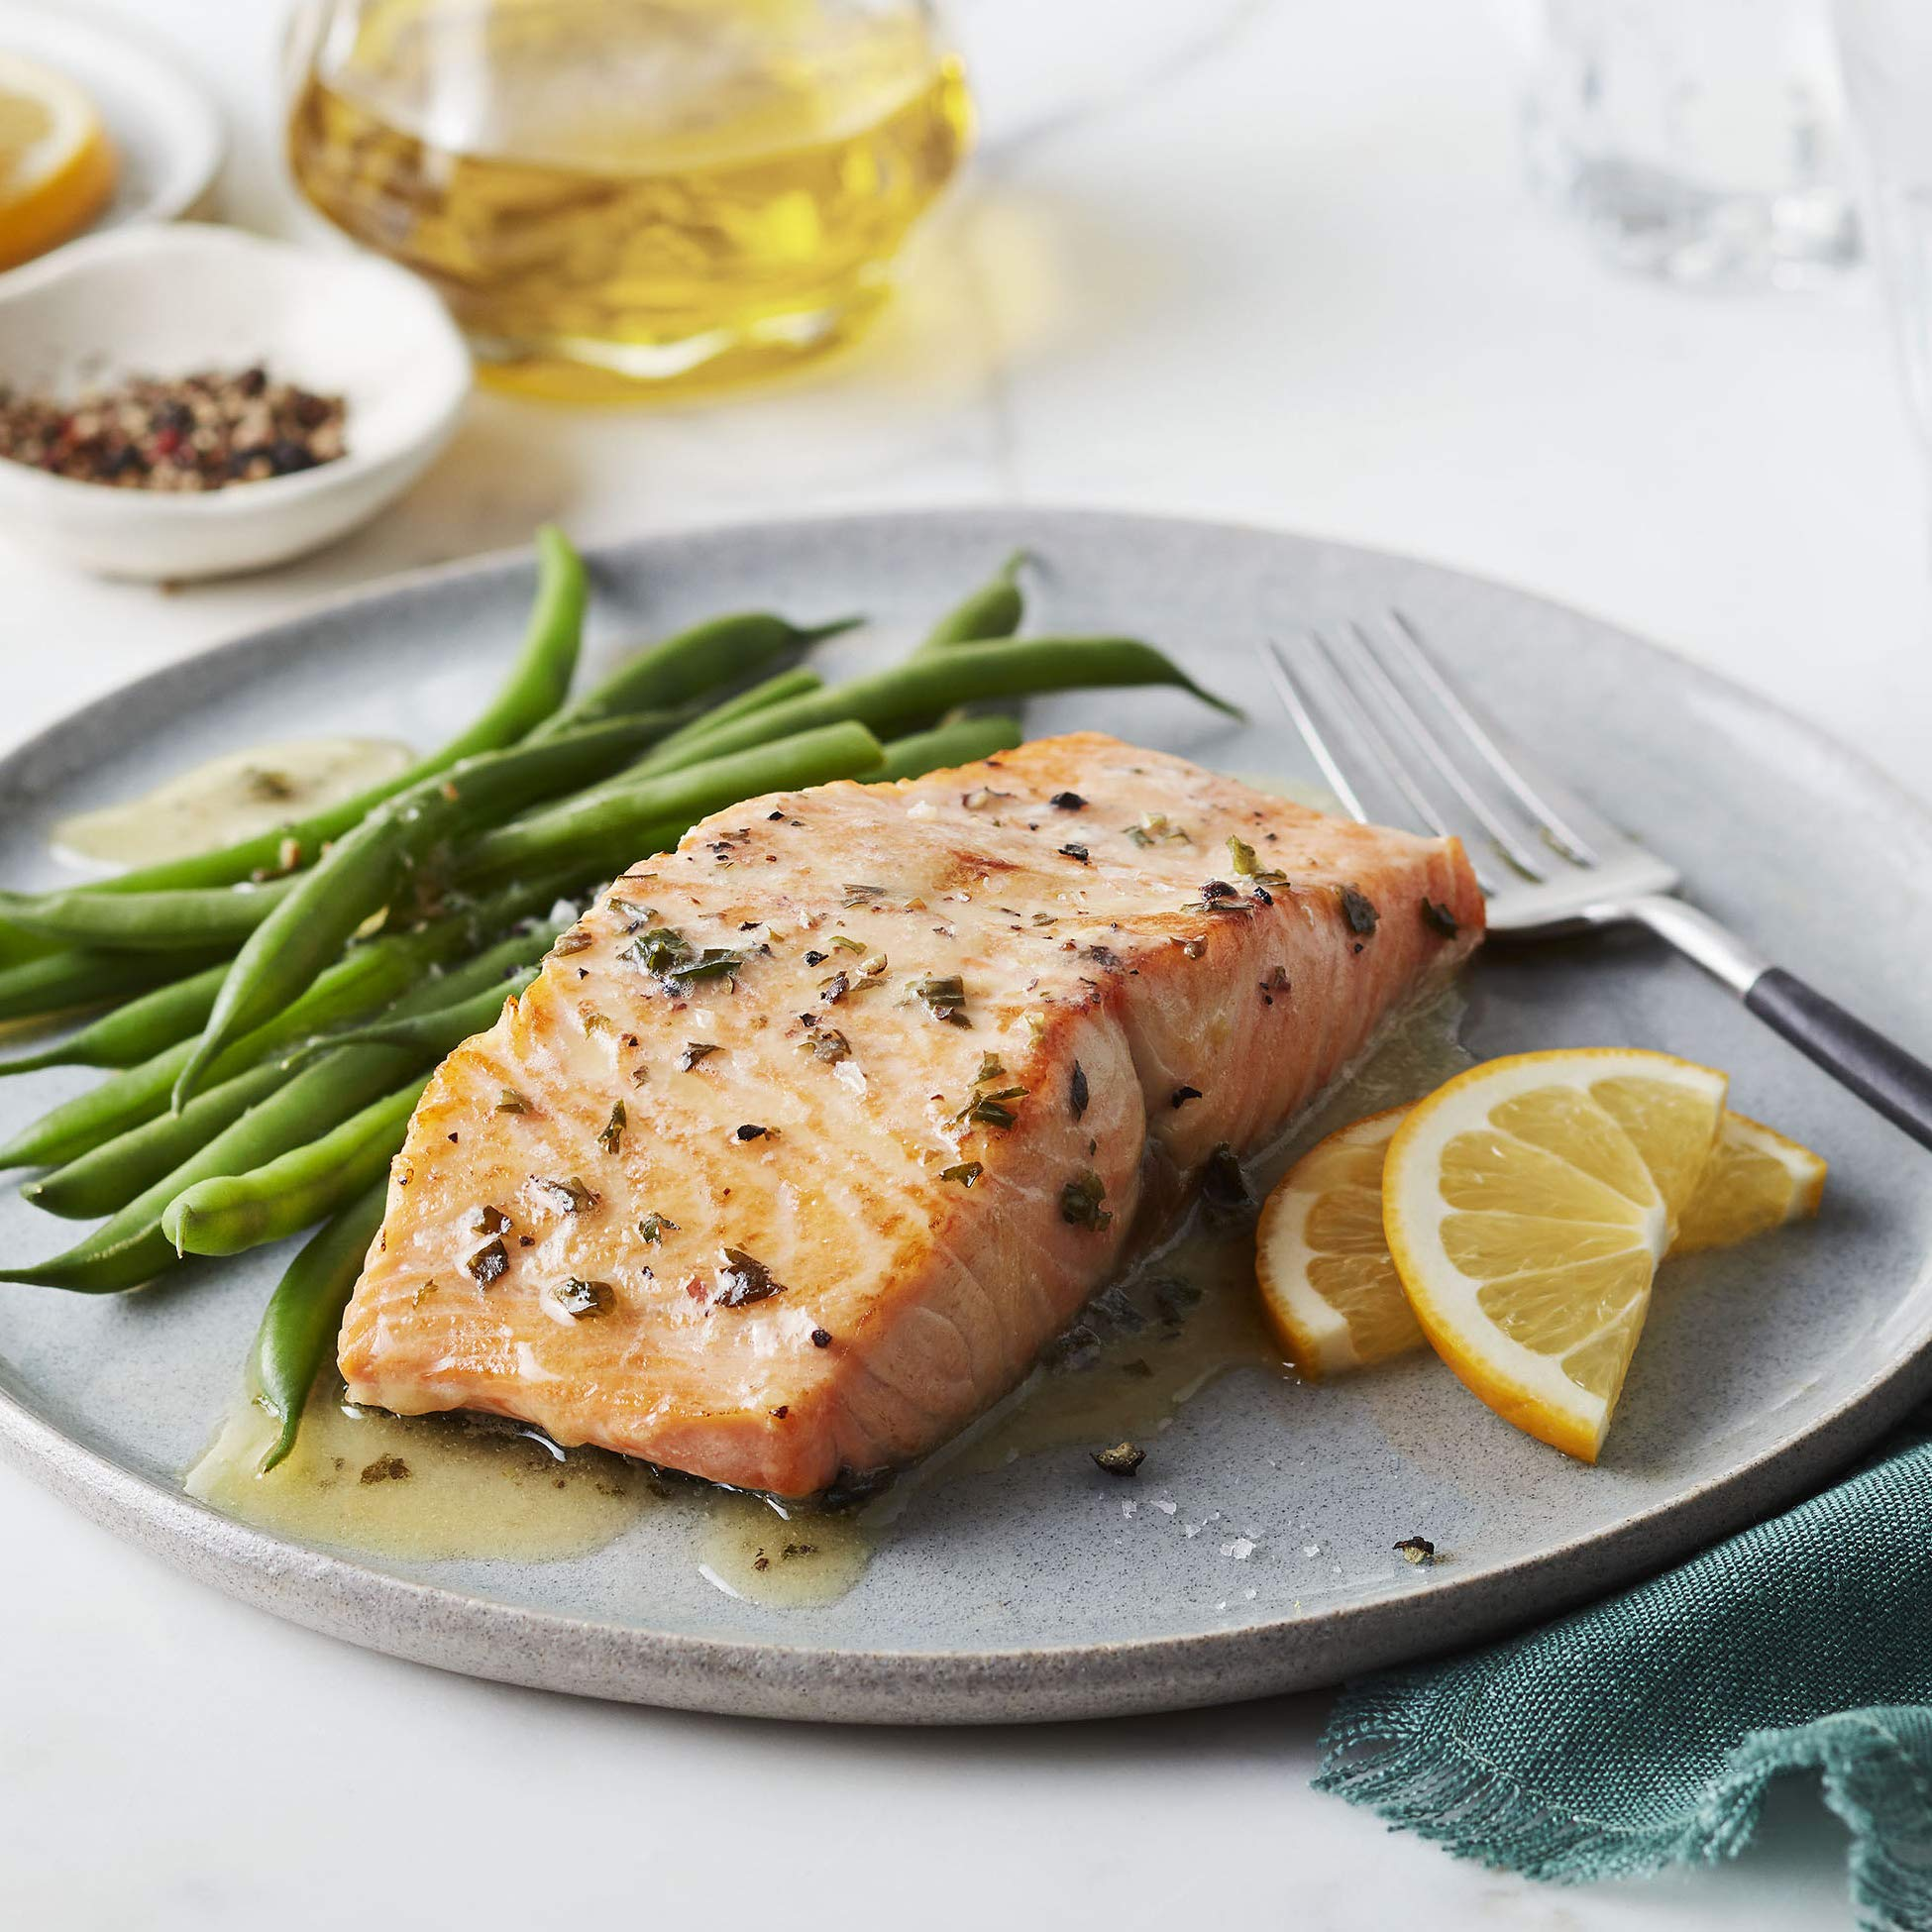 Martha Stewart for True North Seafood: Simple and Easy Sockeye Salmon with Miso Butter and Atlantic Salmon with Lemon Herb Butter - (Pack of 4) 11 oz. Trays by True North Seafood Company (Image #5)